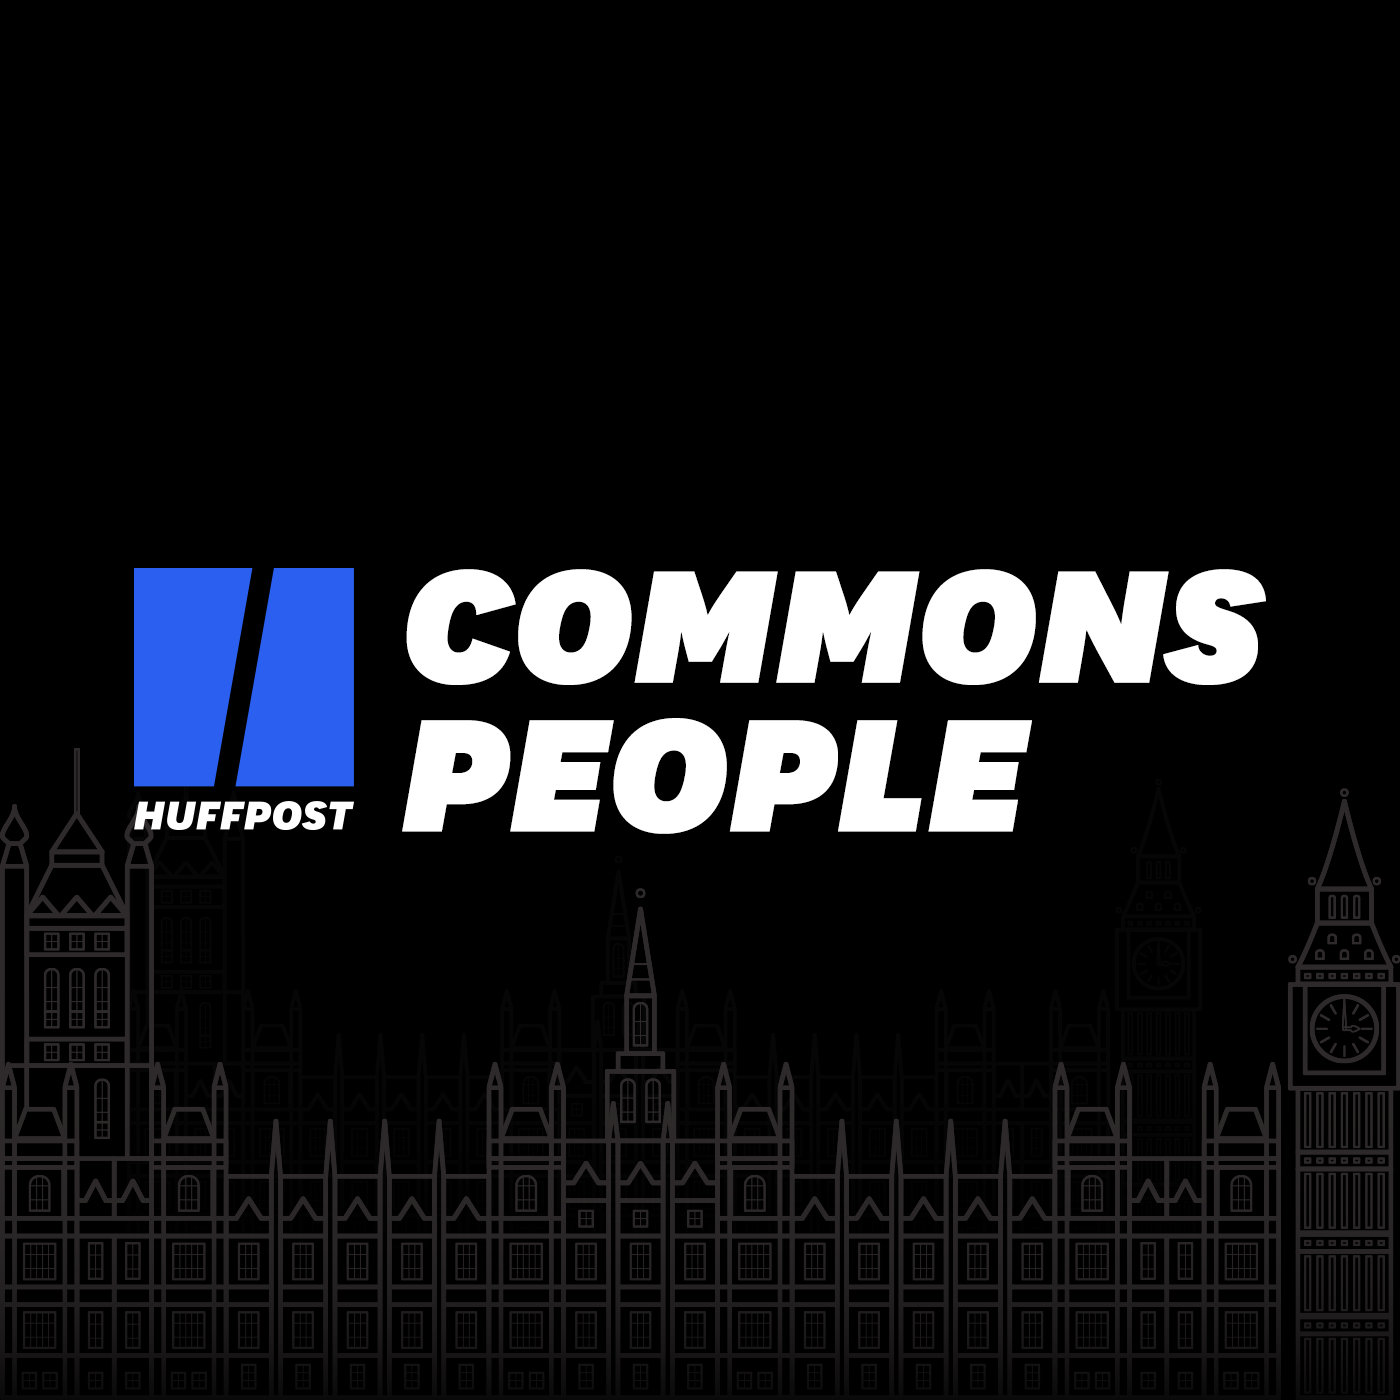 Commons People